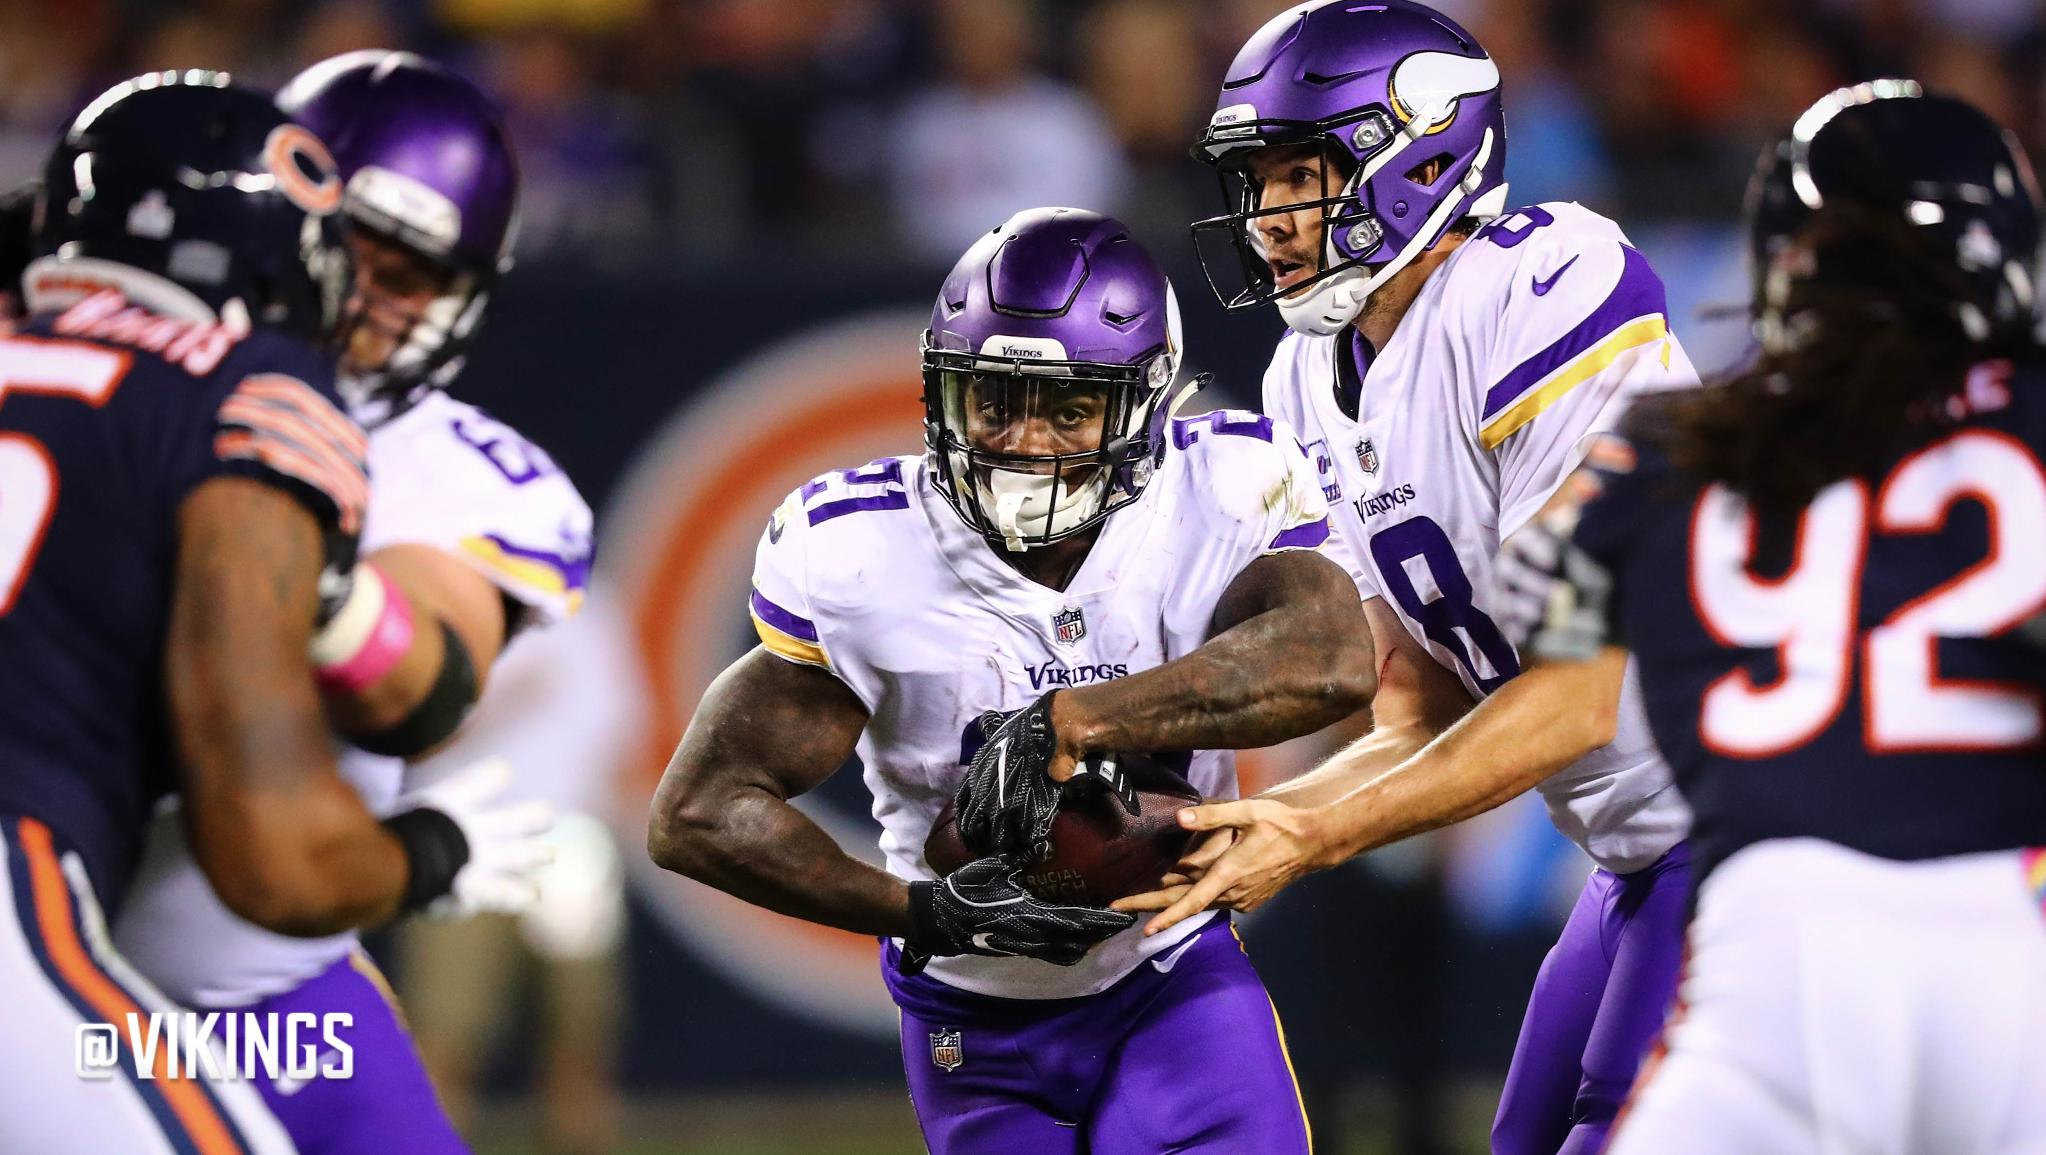 Wobcast Highlights: McKinnon Joins, Fan Mail